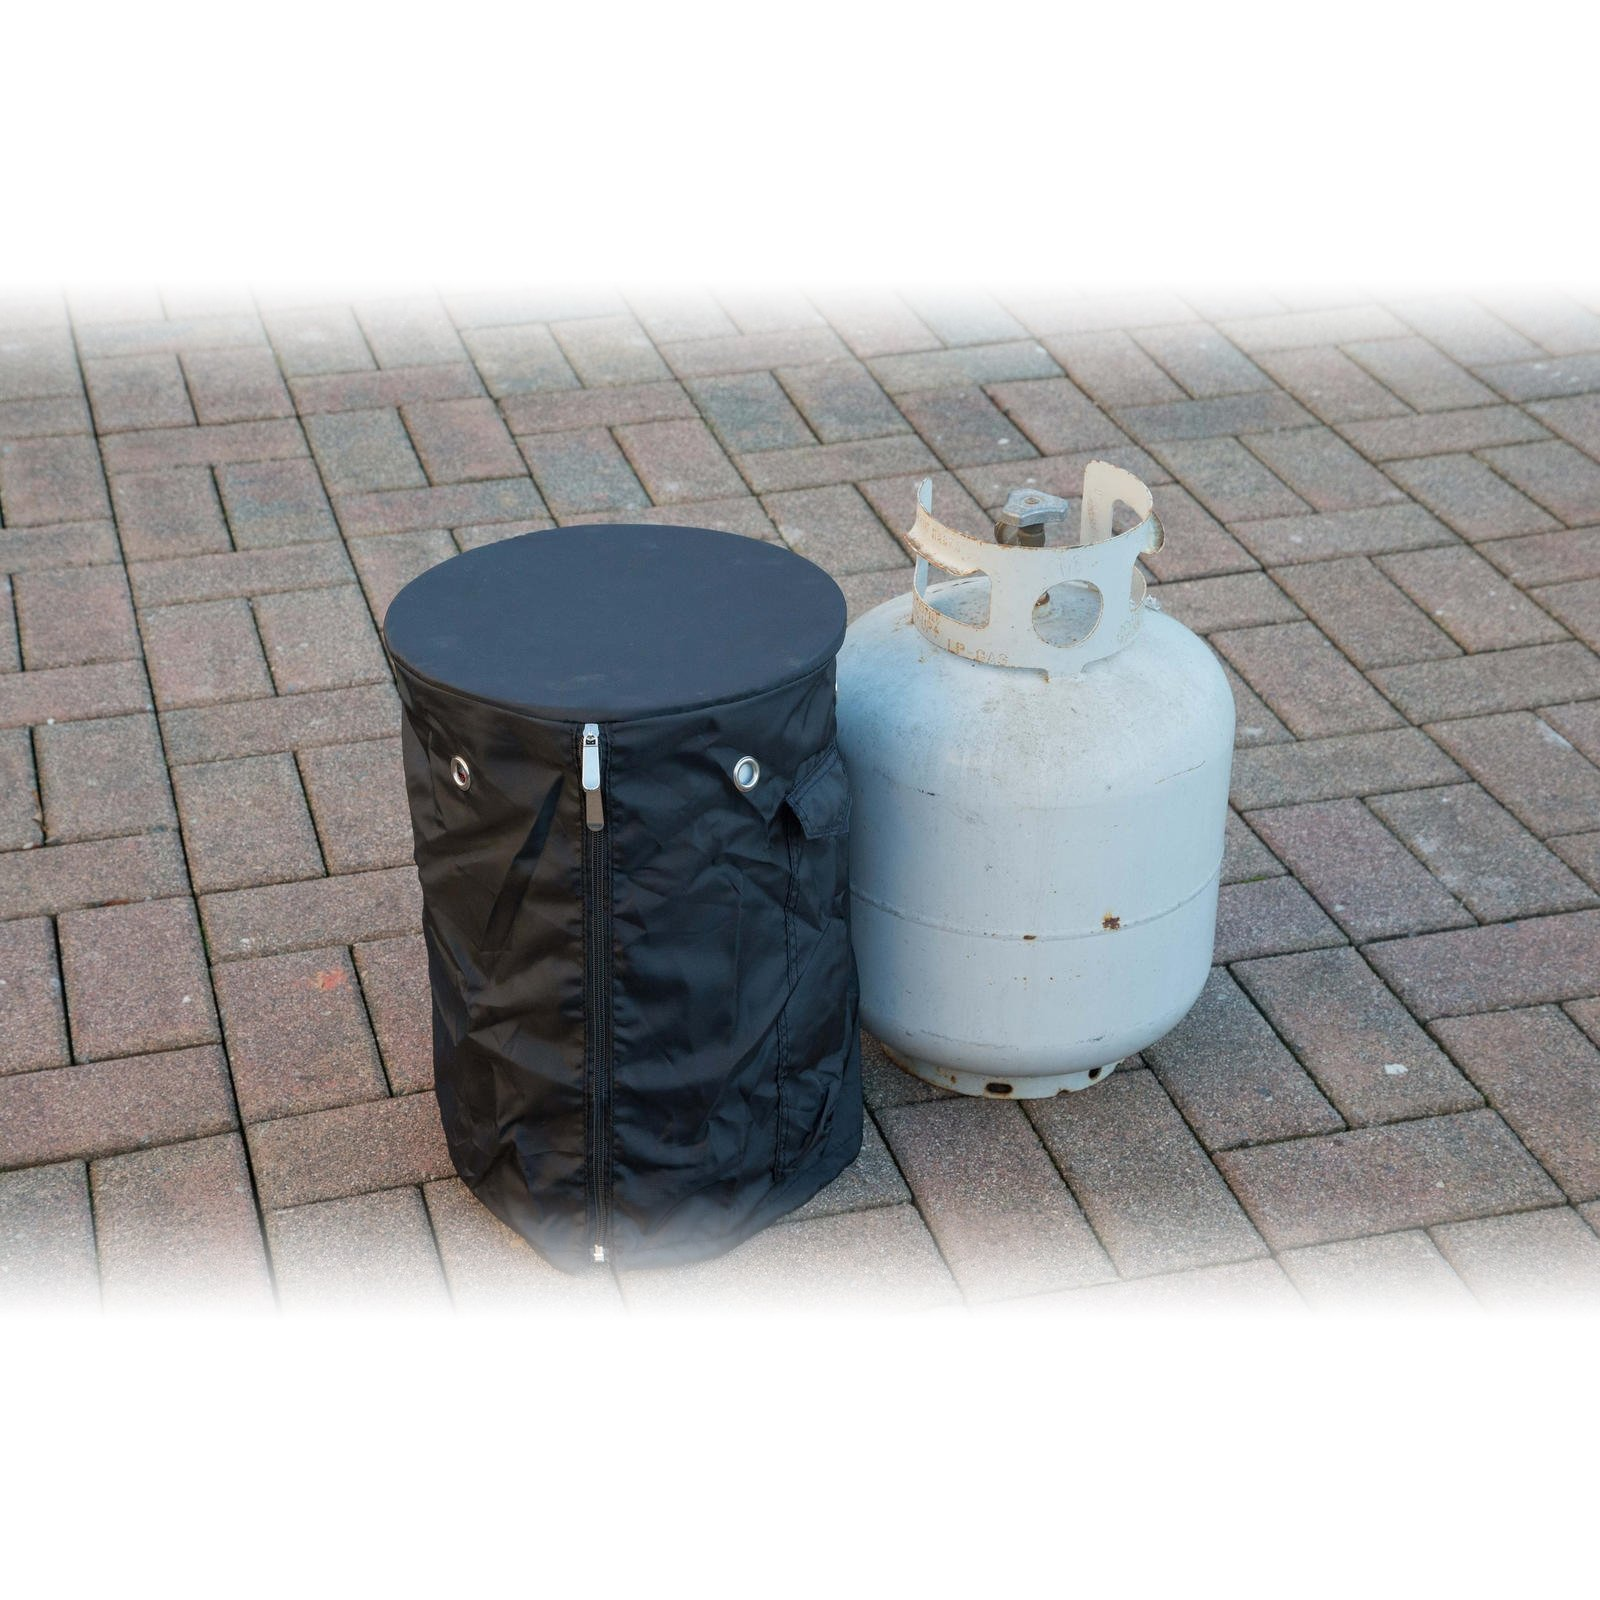 Heininger Destination Gear Propane Tank Cover for 20 lb Tank with Table Top